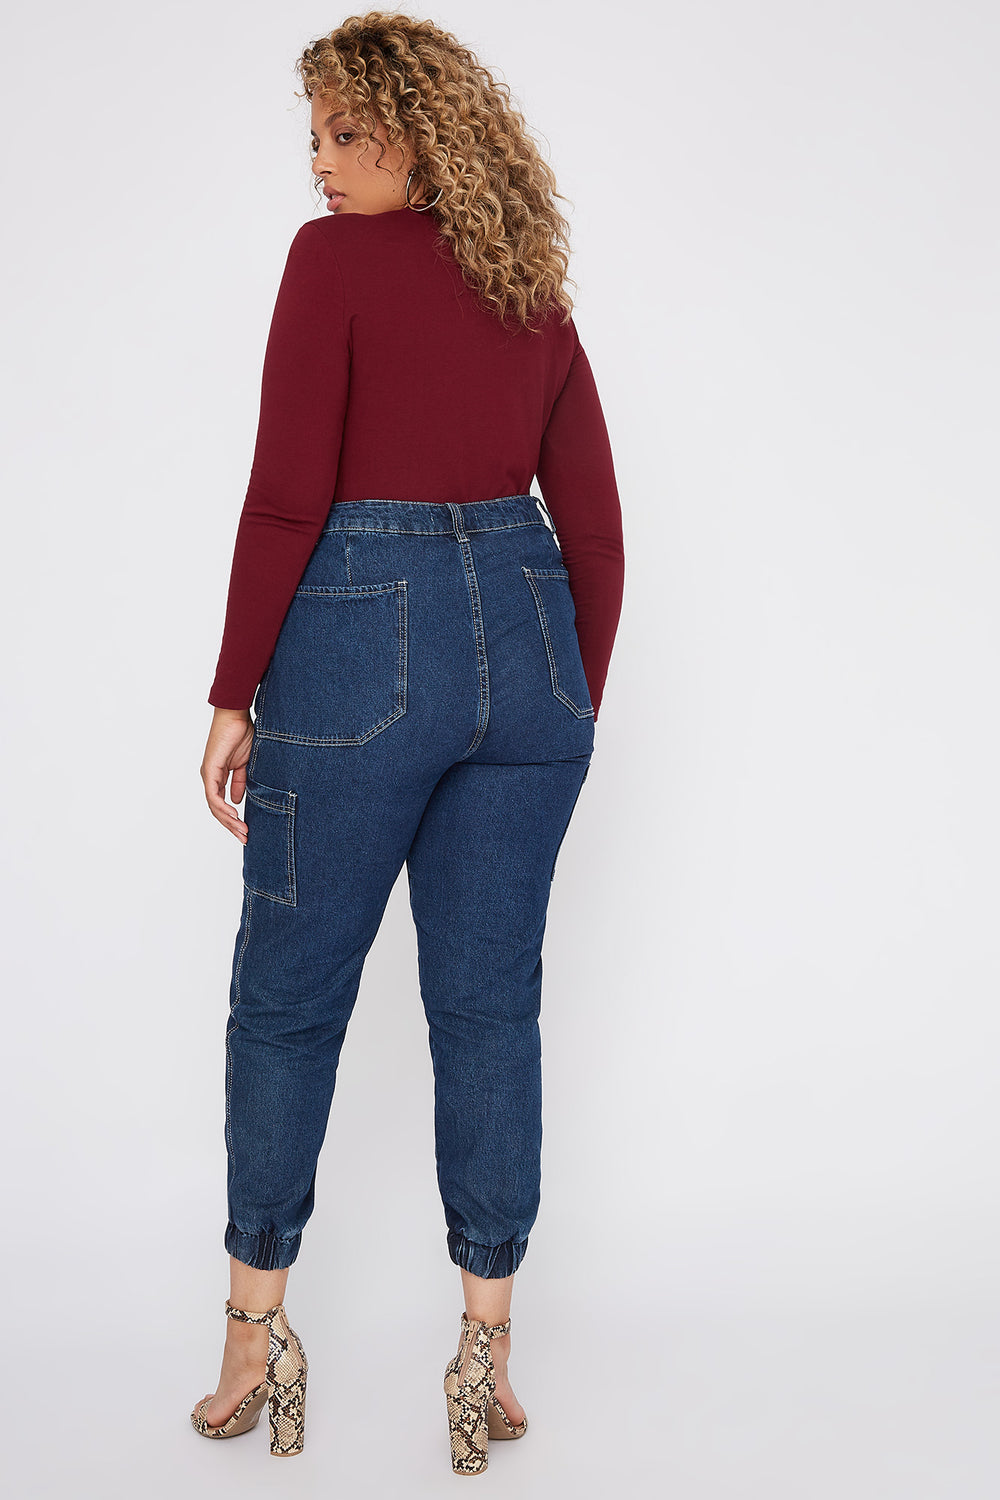 Plus Size Basic V-Neck Long Sleeve Burgundy